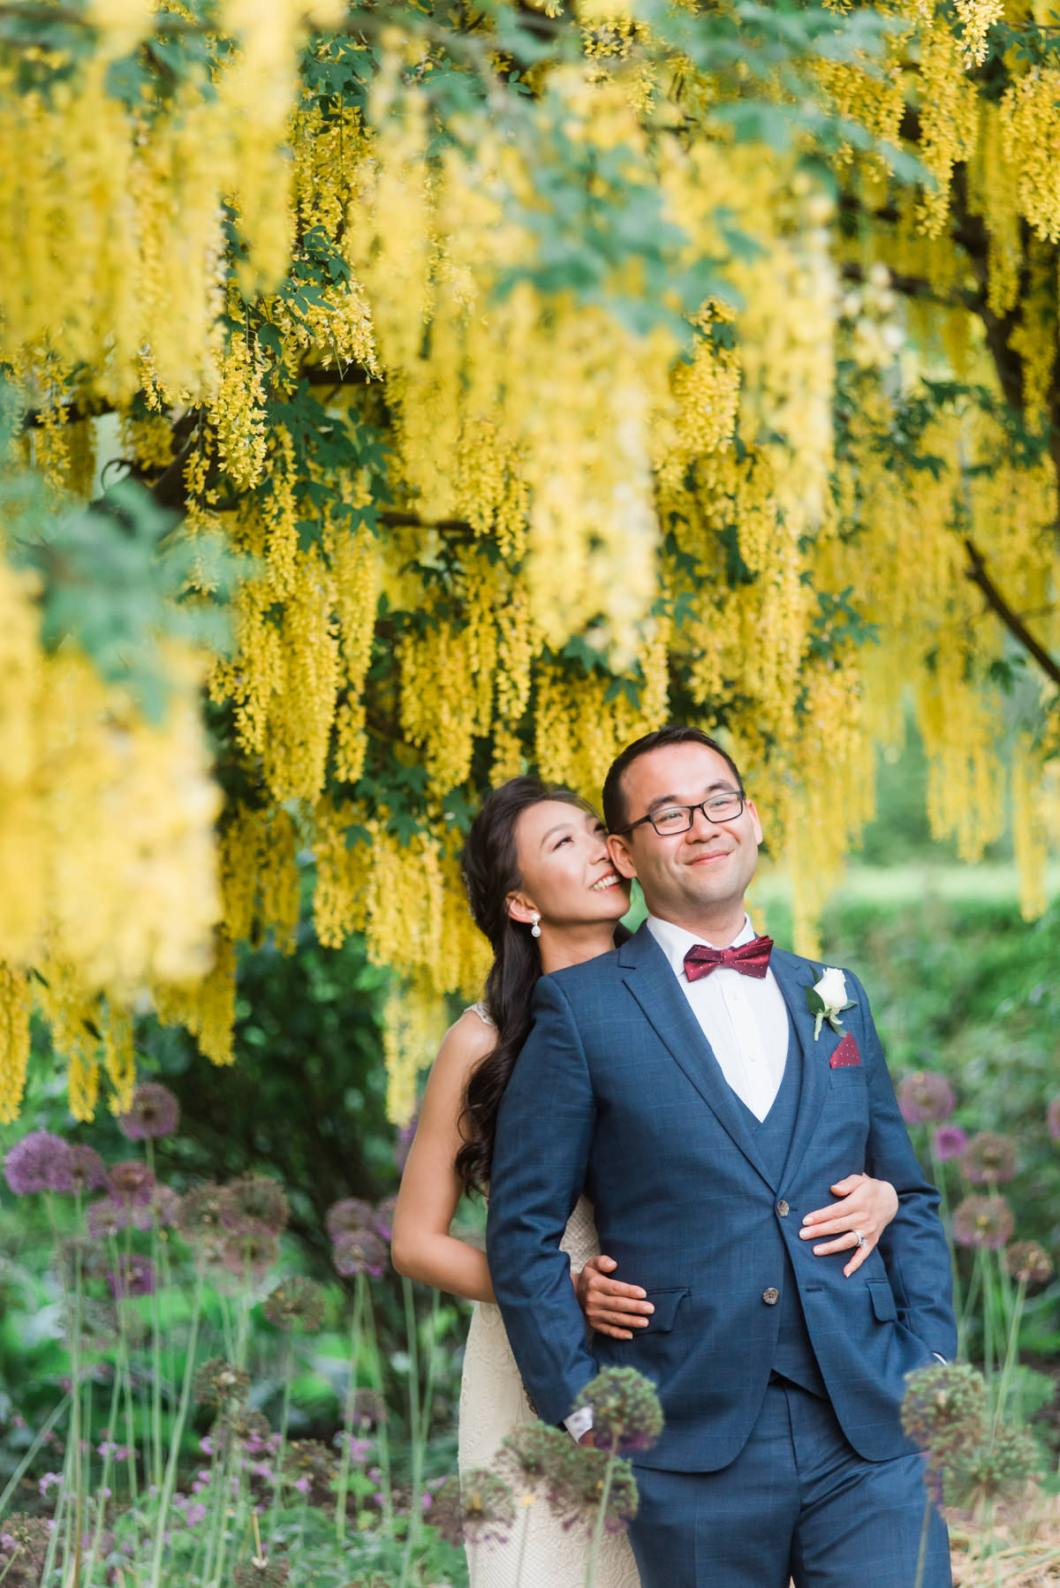 Golden Chain wedding photos in vancouver's Vandusen